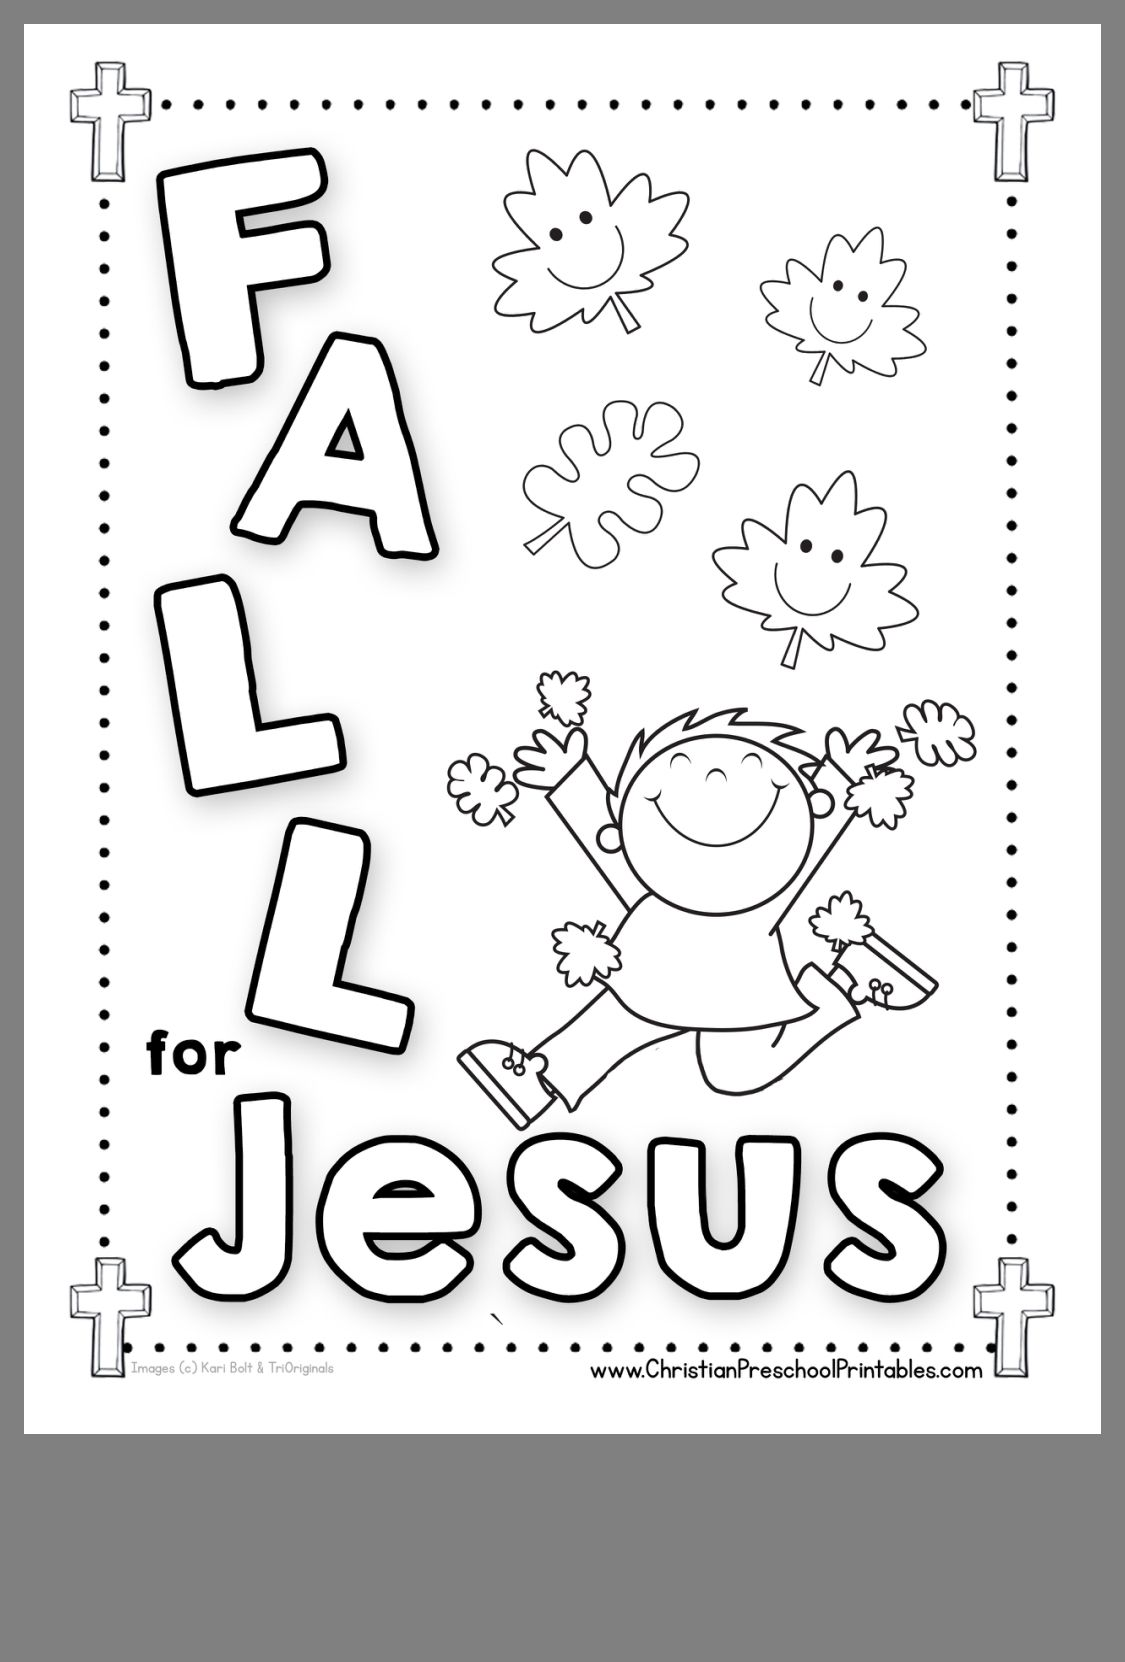 It Is Super Fun And Kids Will Love To Color Whenever